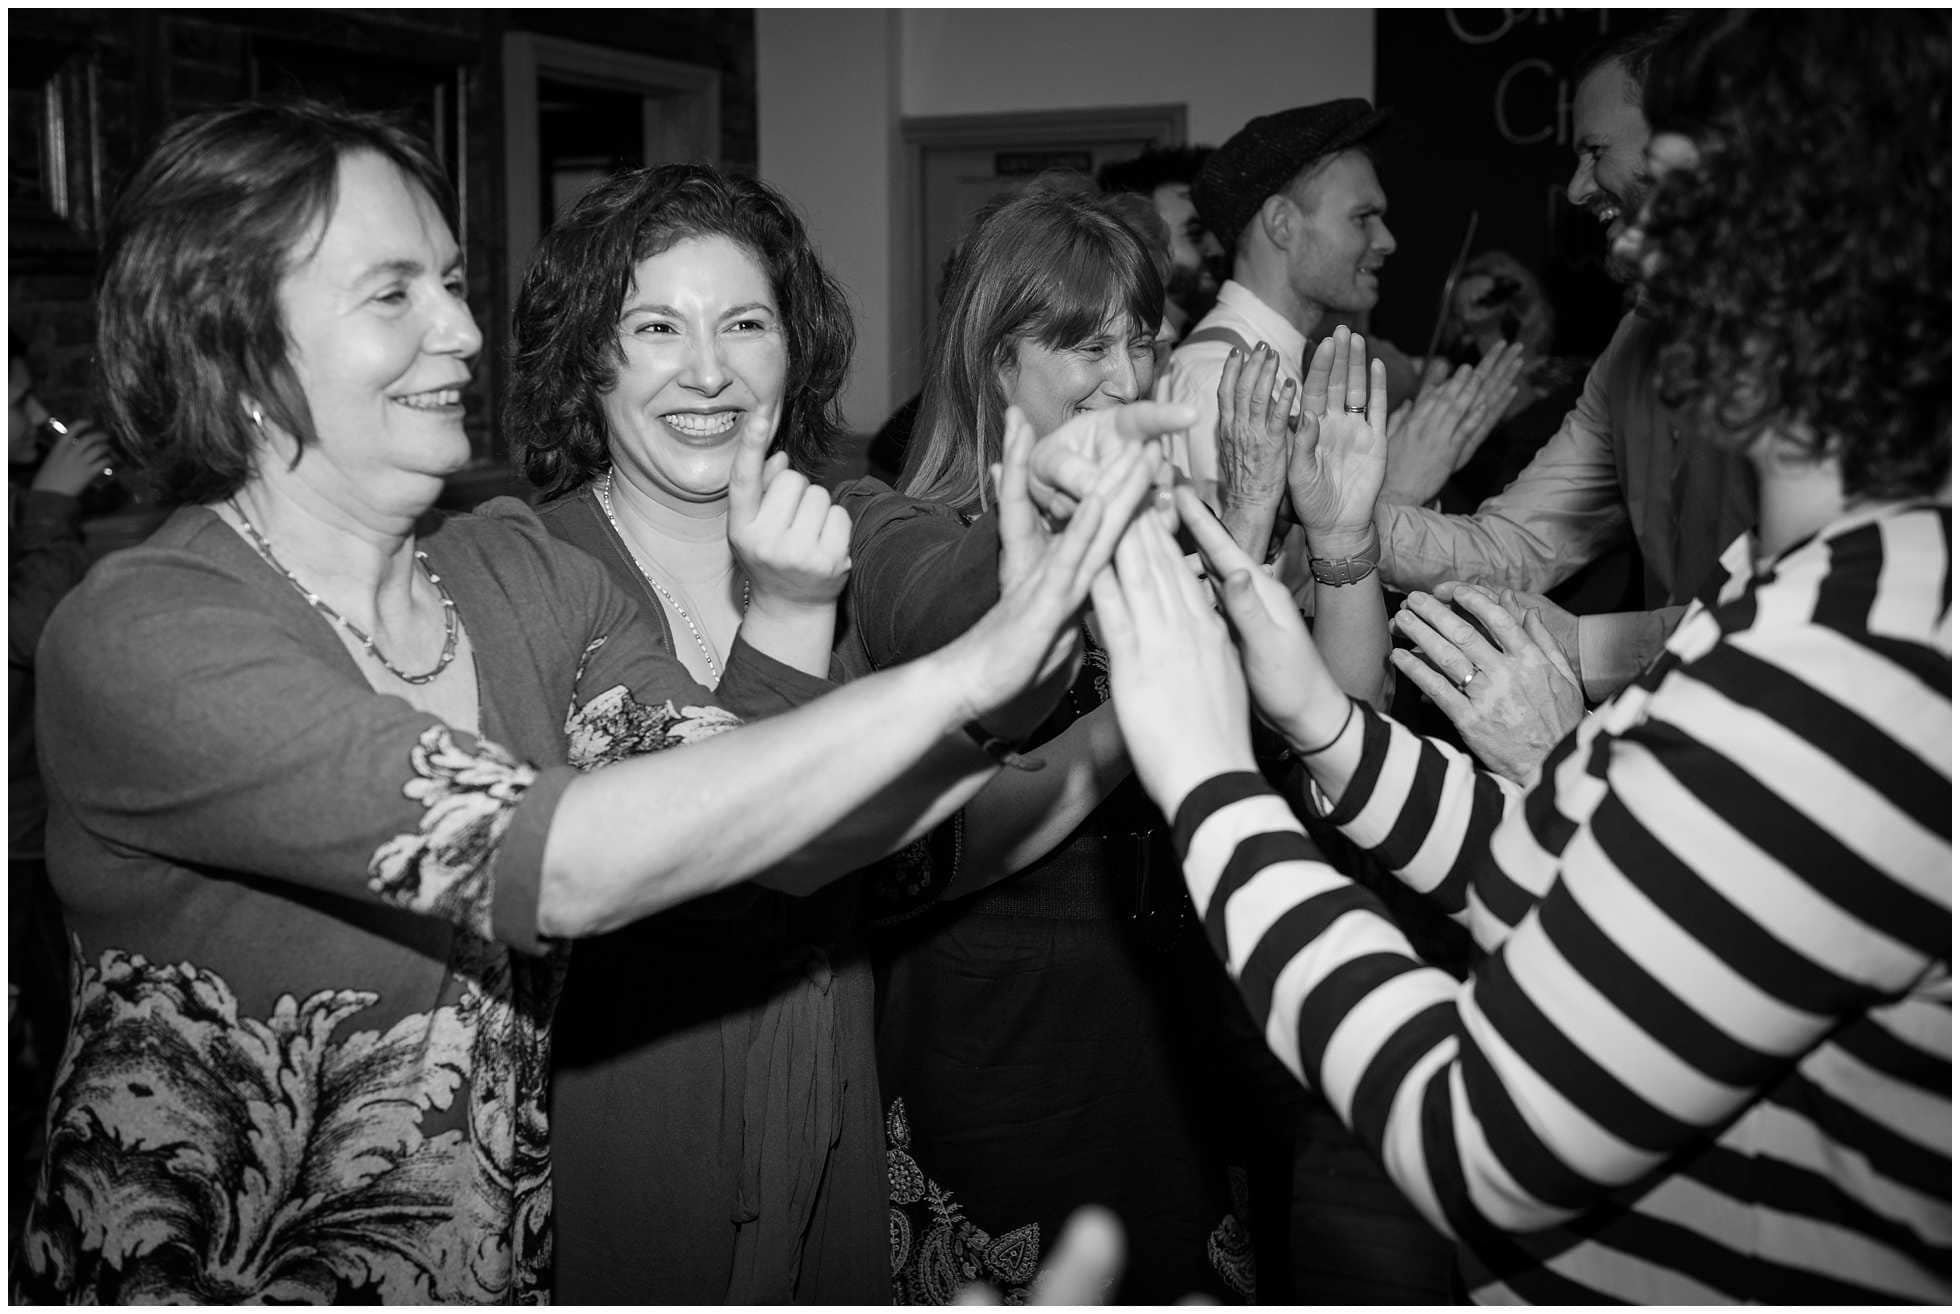 ceilidh dancing fun with the girls